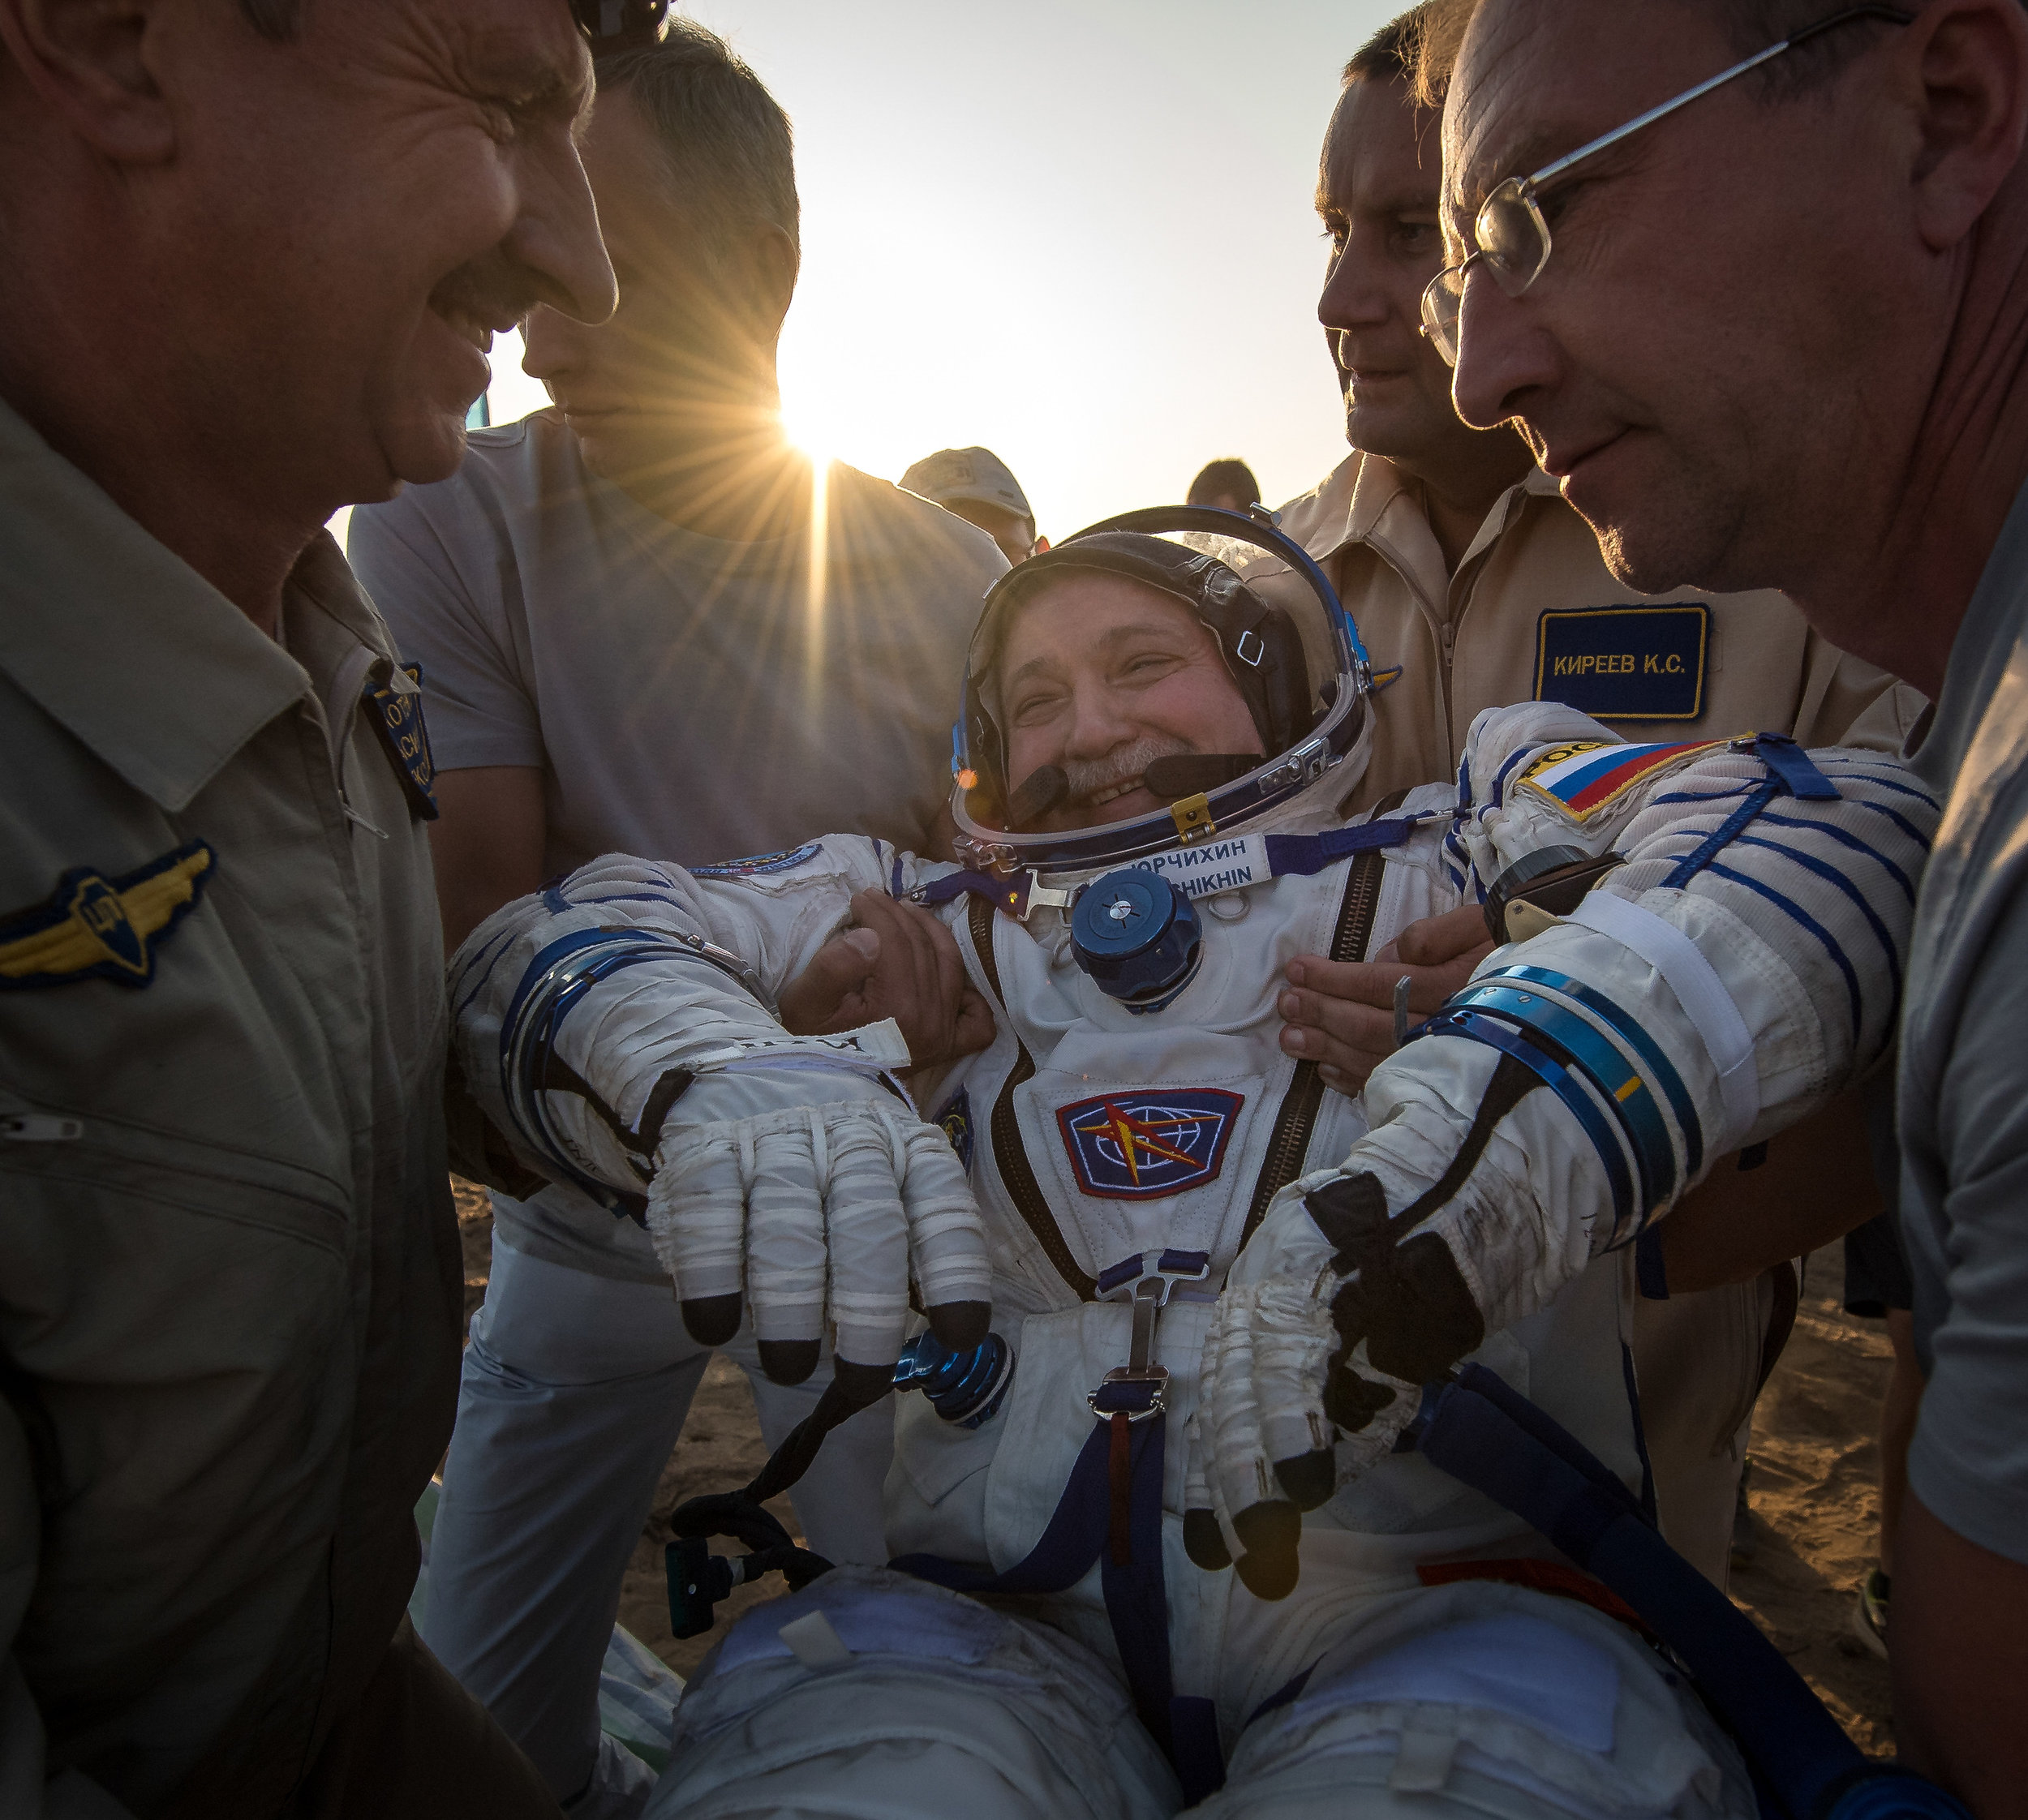 Fyodor Yurchikhin is the first to be helped out of the Soyuz MS-04 spacecraft just minutes after he and NASA astronauts Peggy Whitson, and Jack Fischer landed. Photo and Caption Credit: Bill Ingalls / NASA